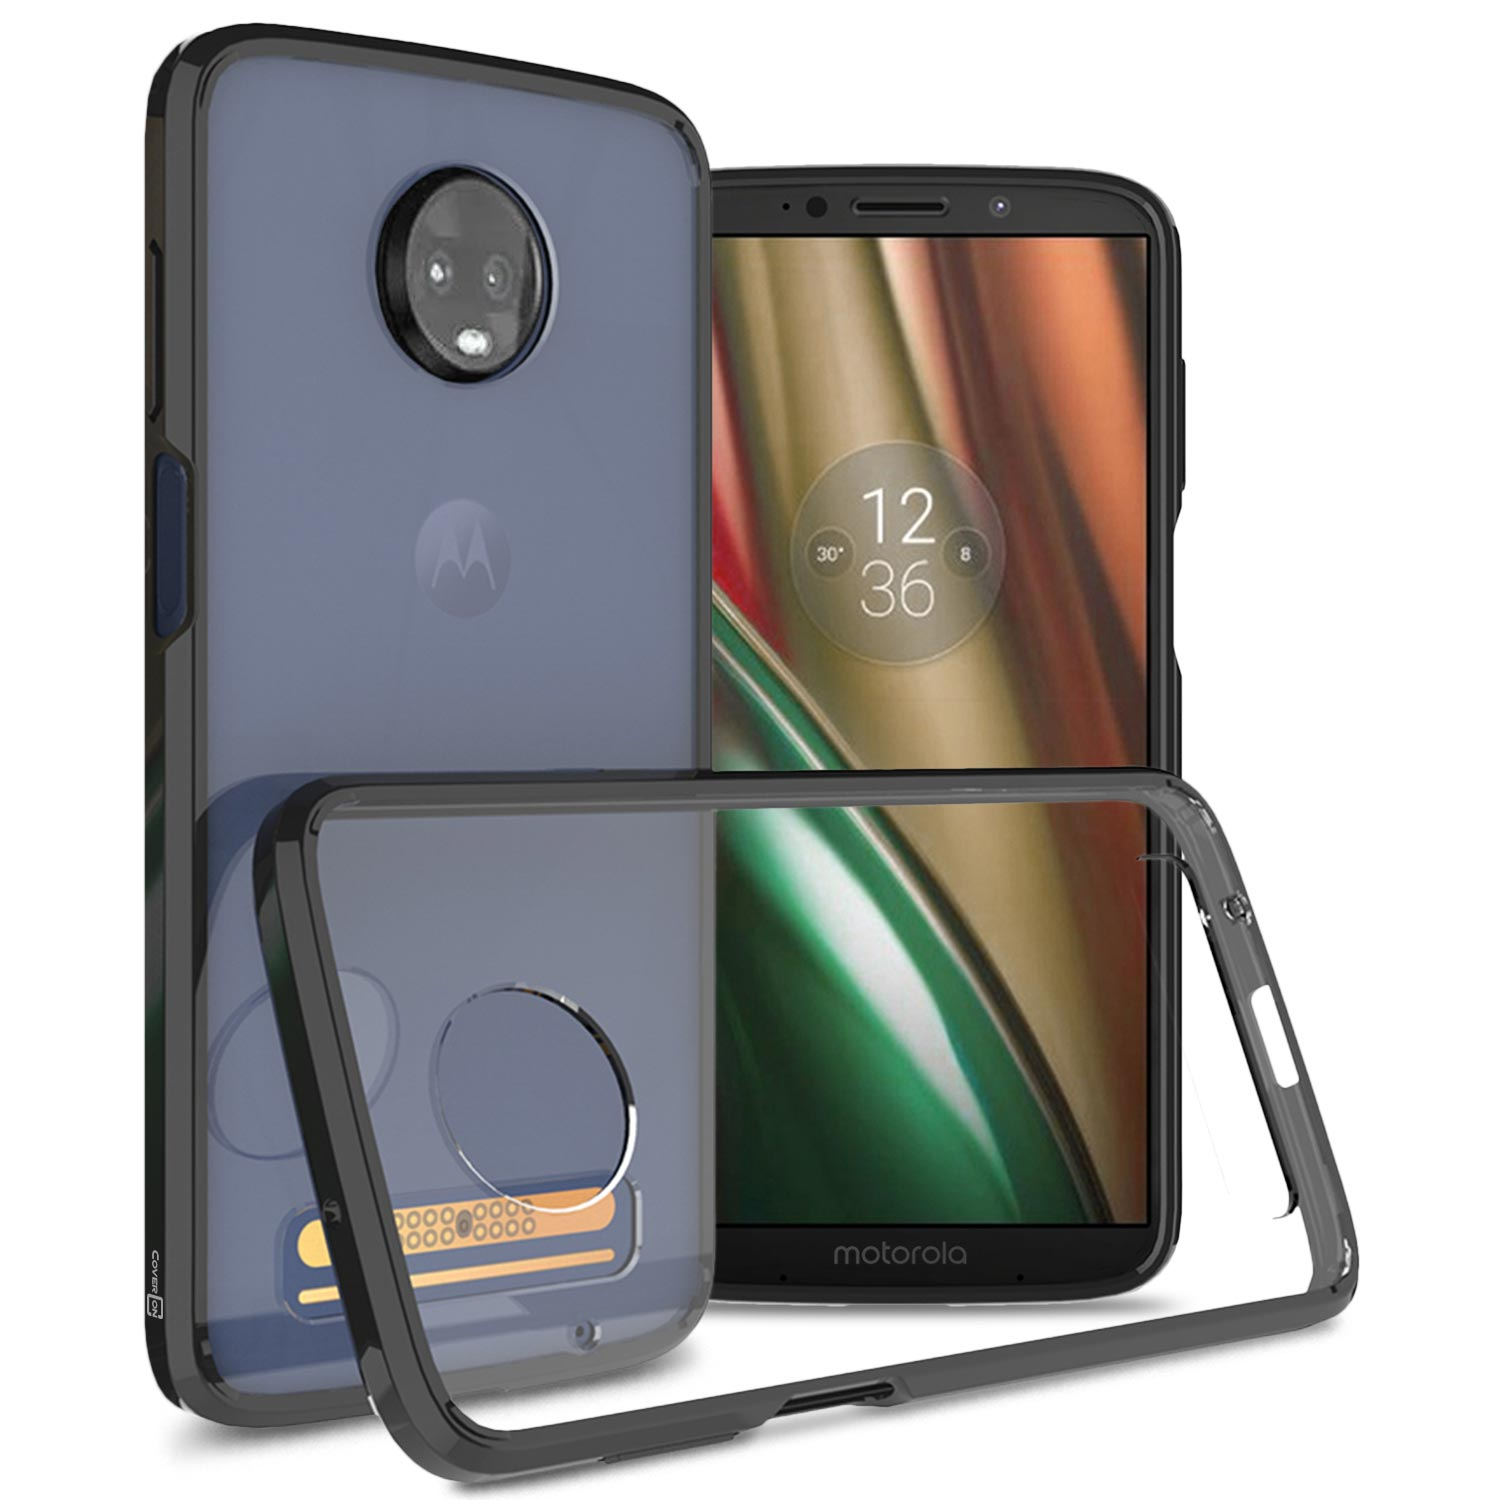 separation shoes 1cc5d 2ff31 CoverON Motorola Moto Z3 / Moto Z3 Play Case, ClearGuard Series Clear Hard  Phone Cover